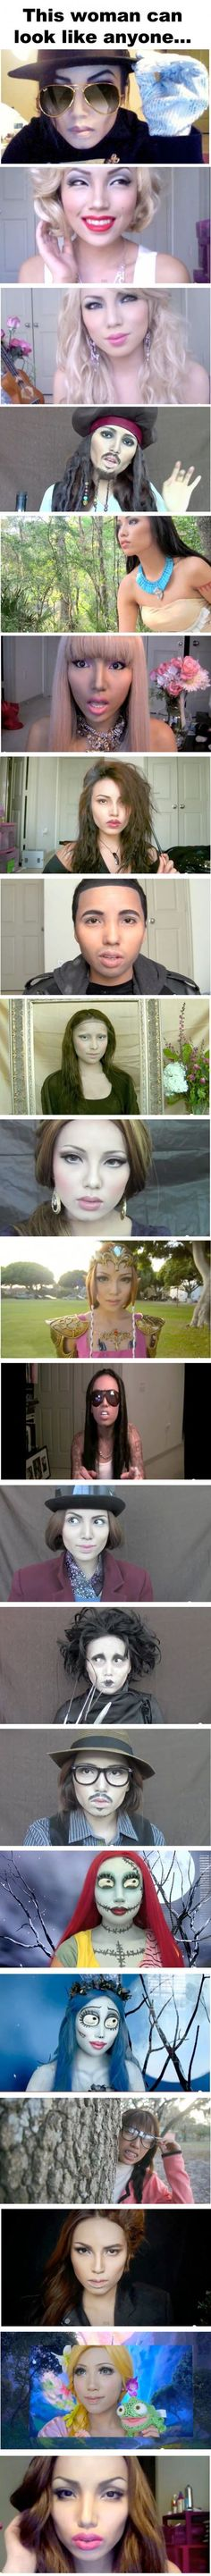 The Incredible Power Of Makeup...ermigawd